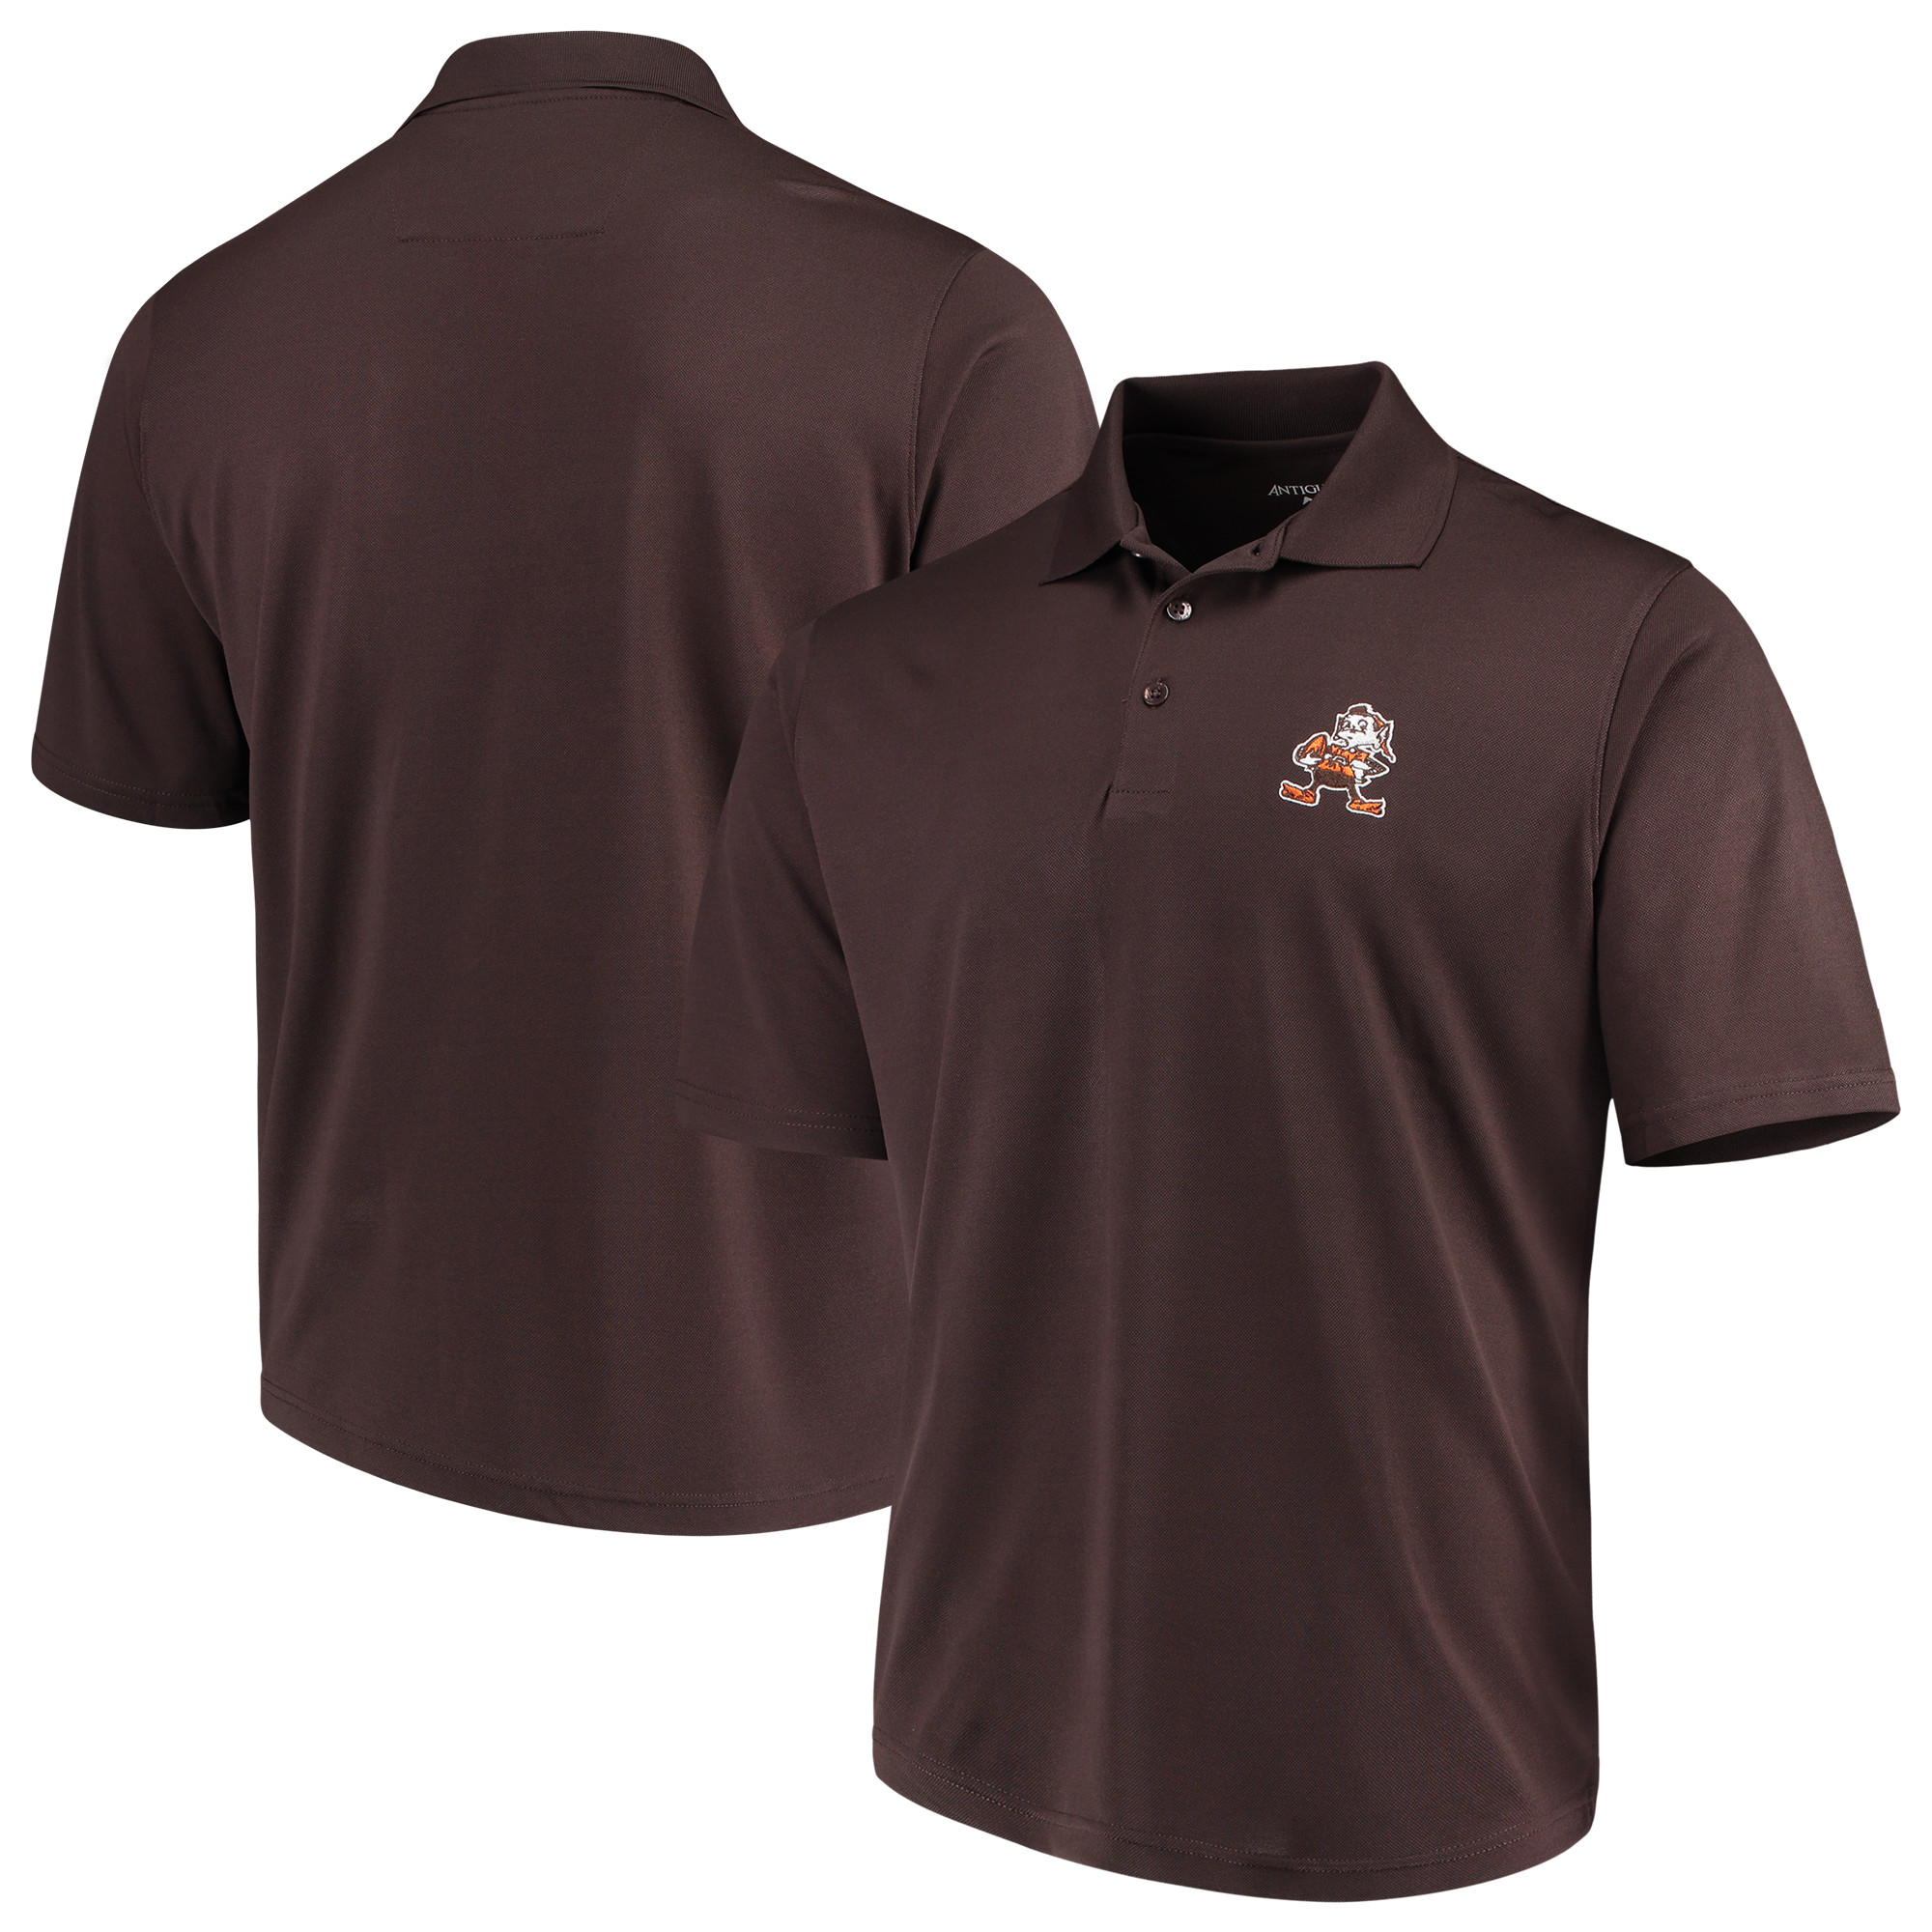 Cleveland Browns Antigua Throwback Pique Polo - Brown